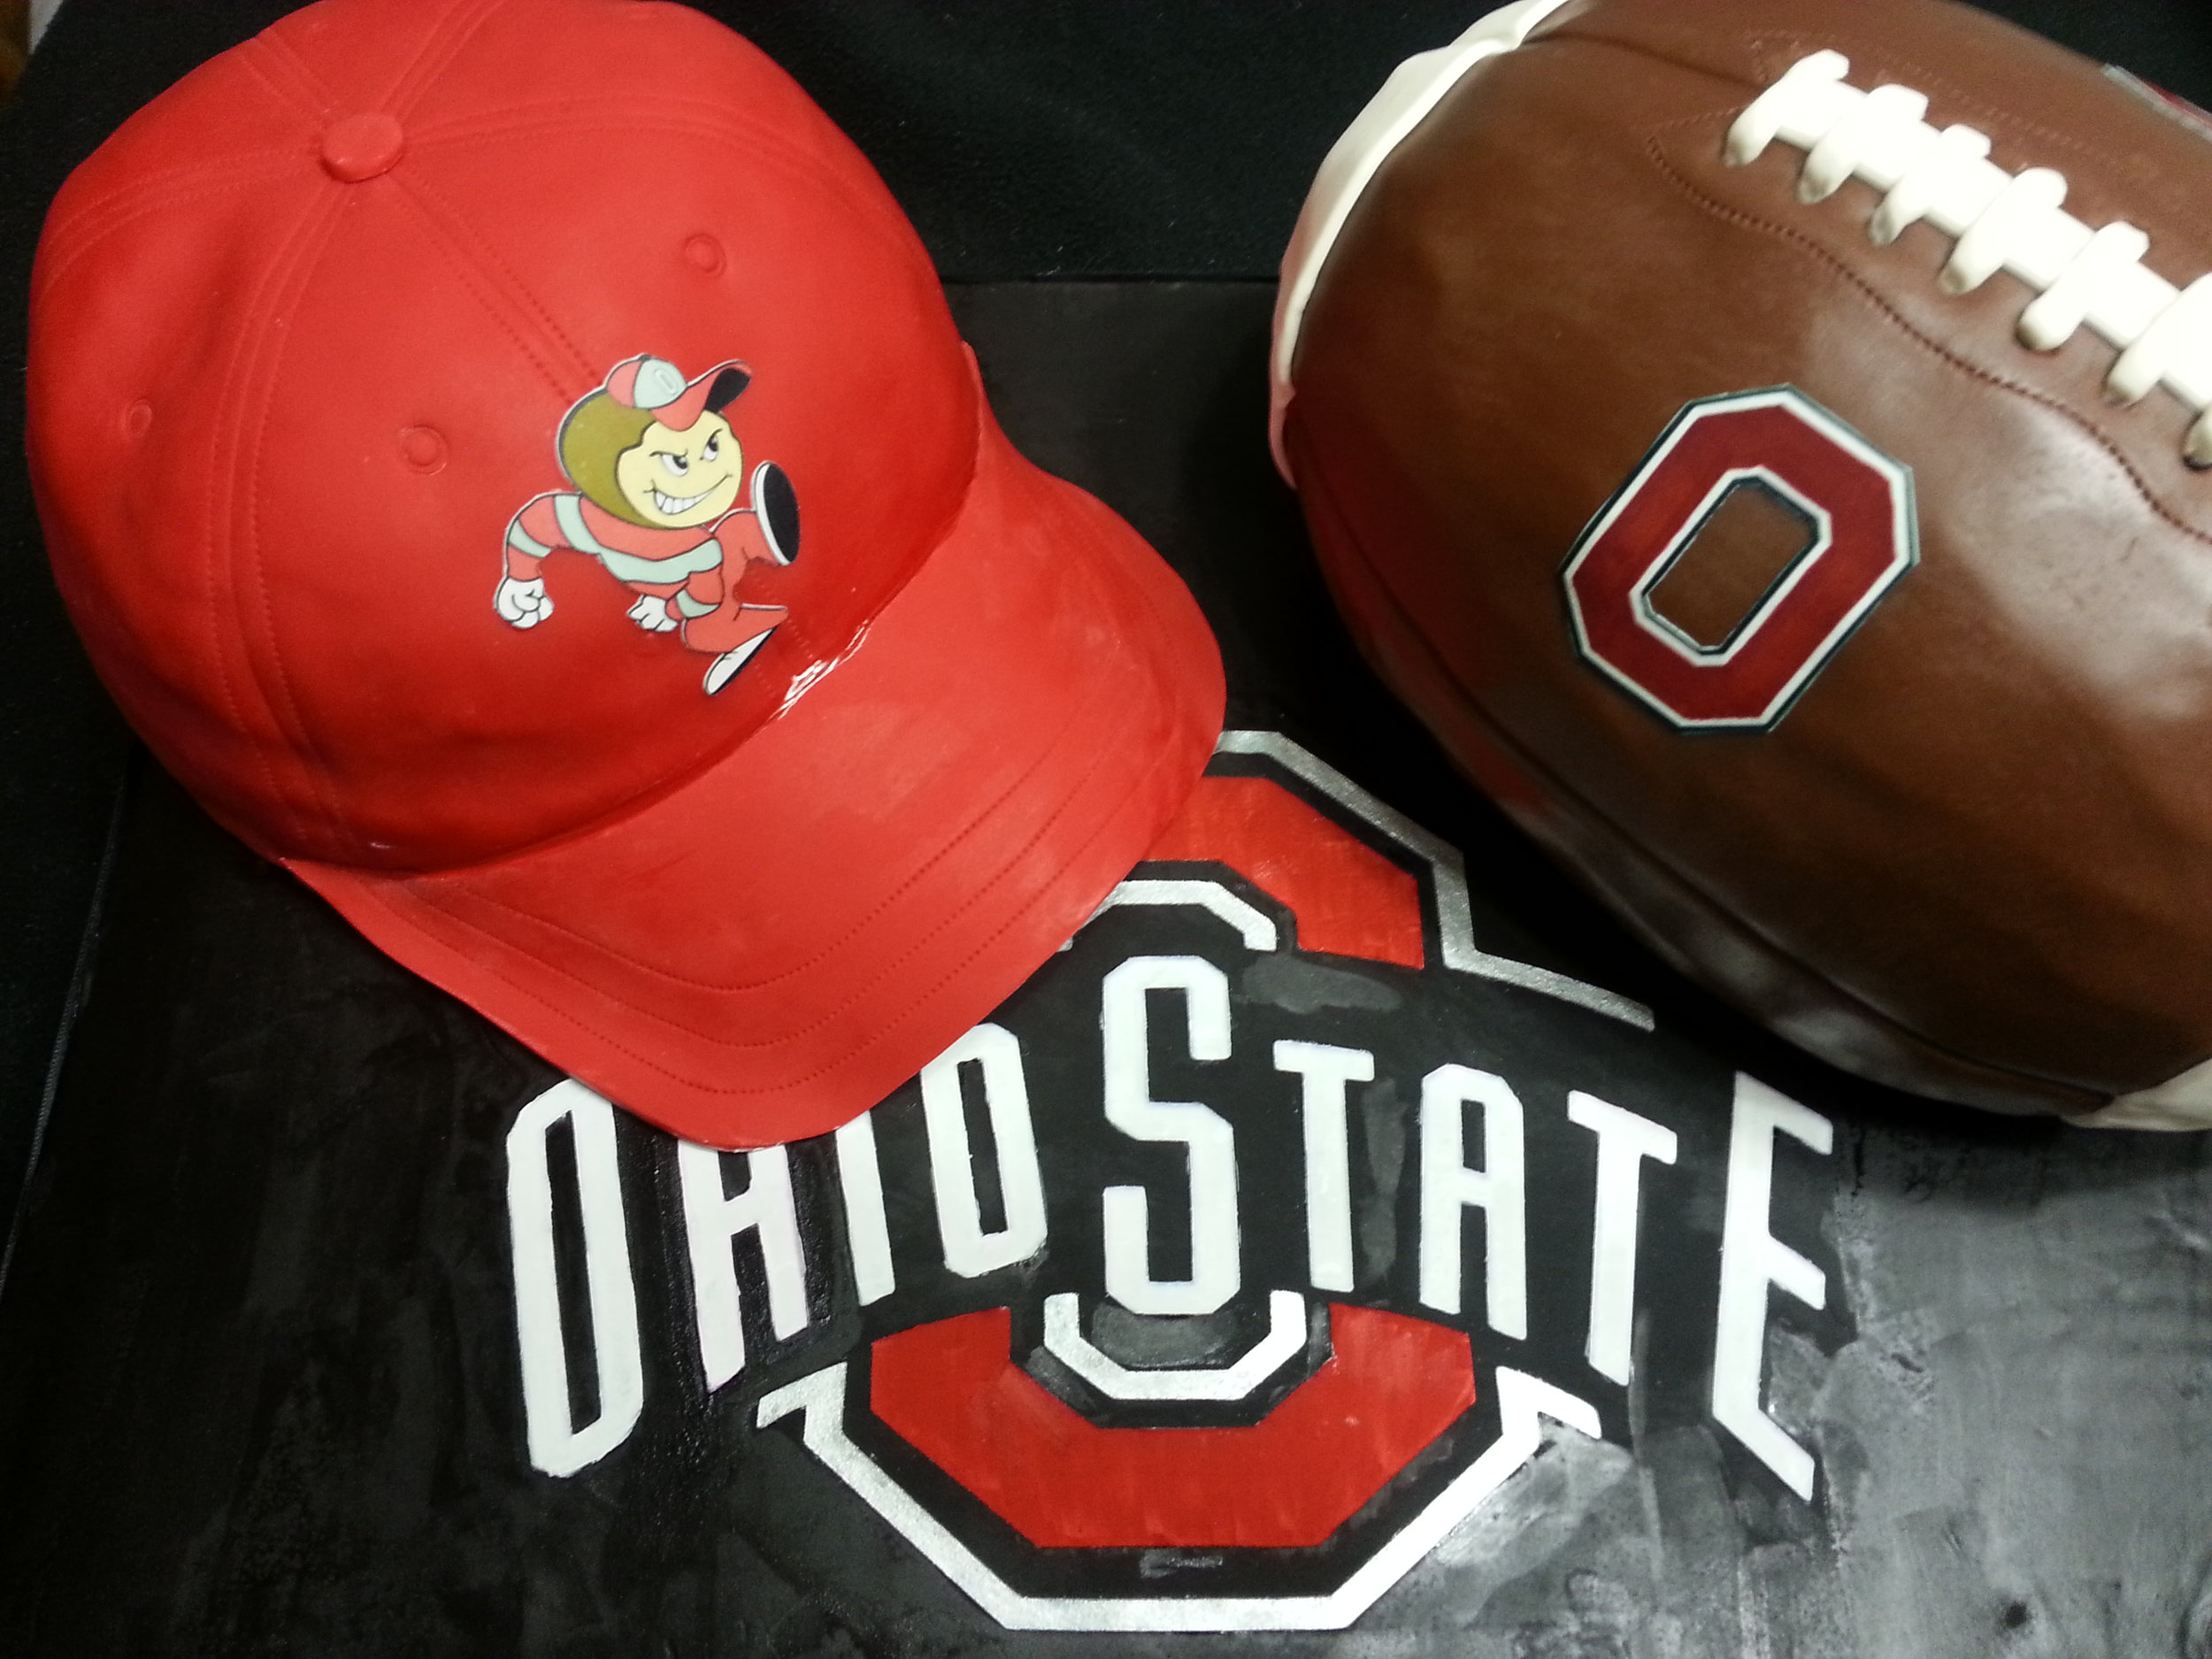 You don't have to like Ohio State, but you must love cake, right?